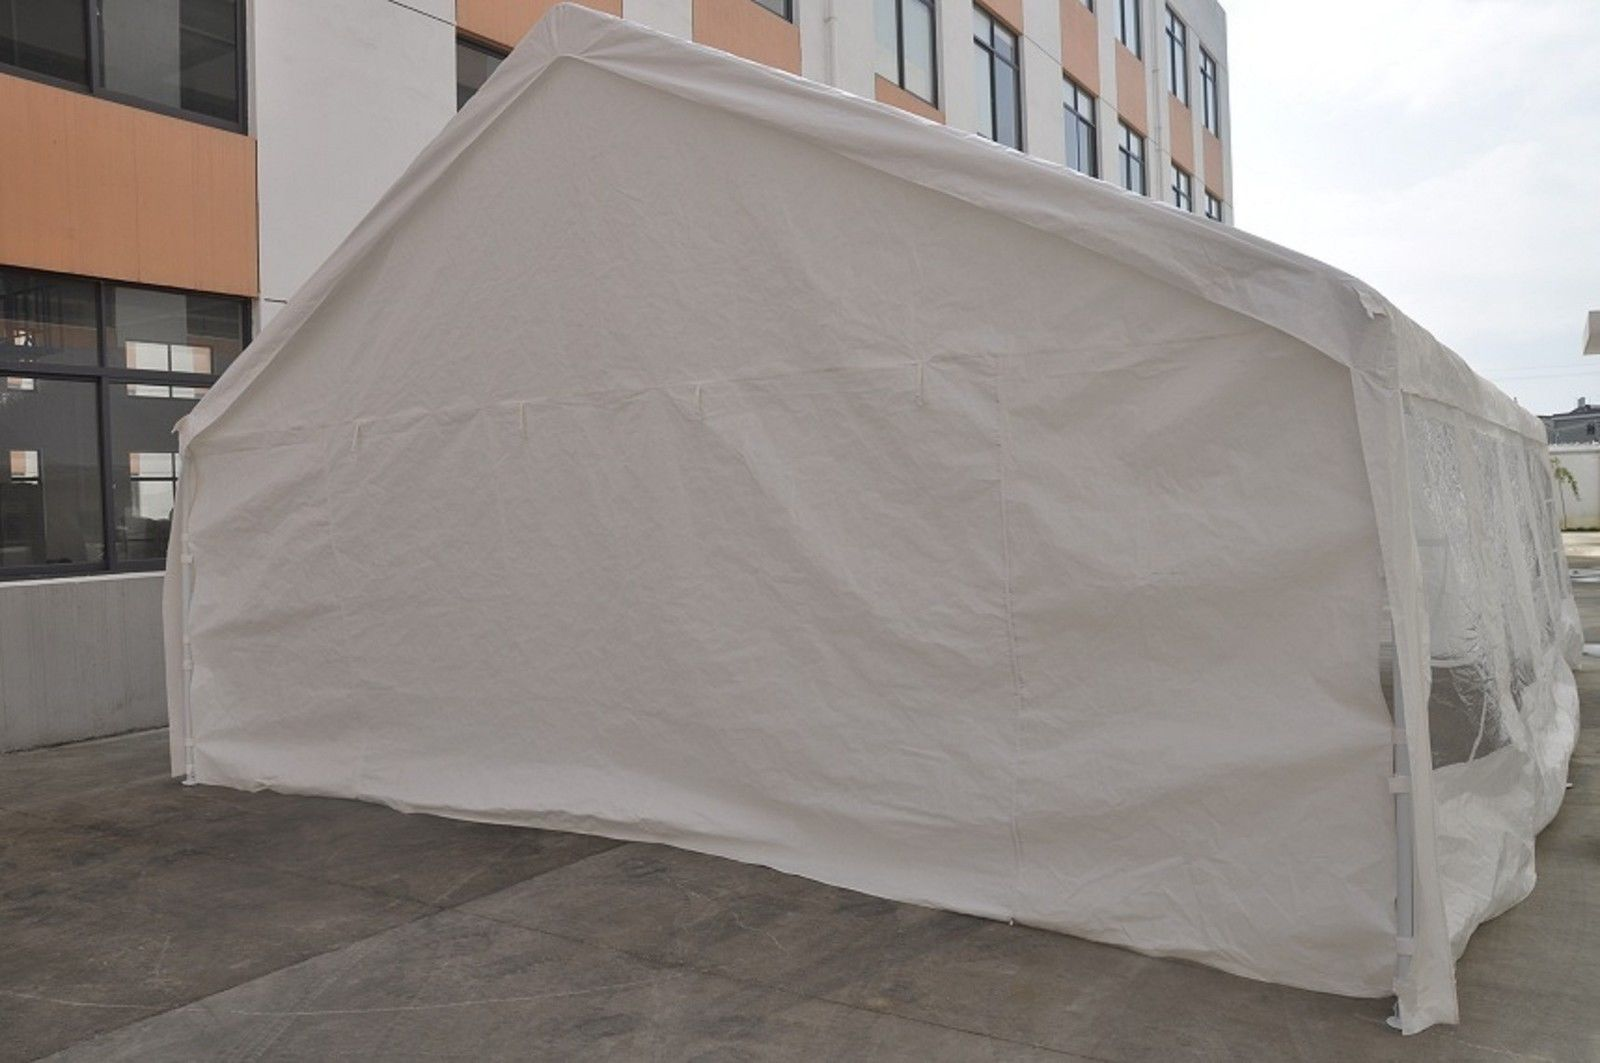 Heavy Duty Tents And Shelters : New white heavy duty carport party tent canopy car